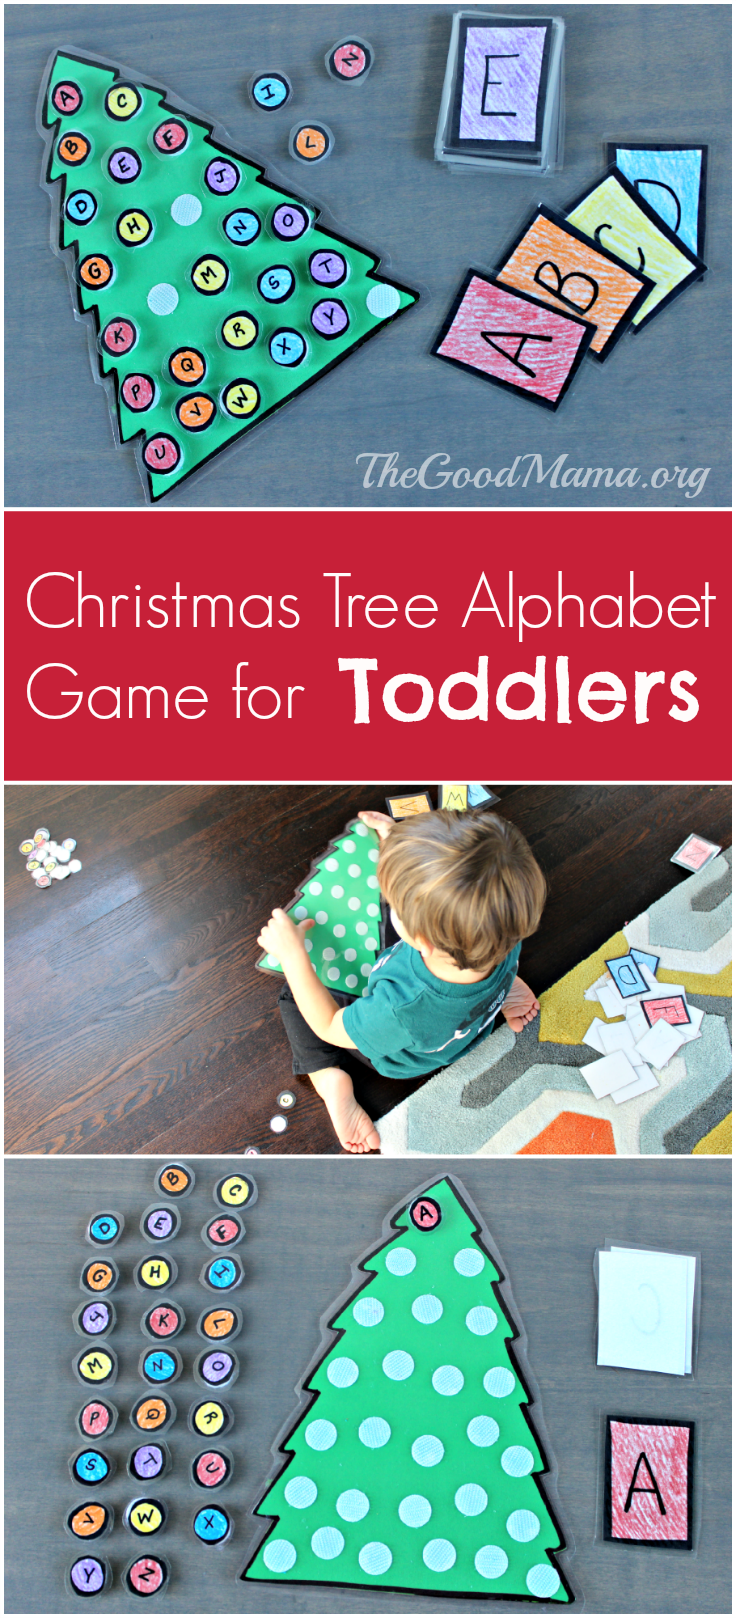 Christmas Tree Alphabet Game for Toddlers